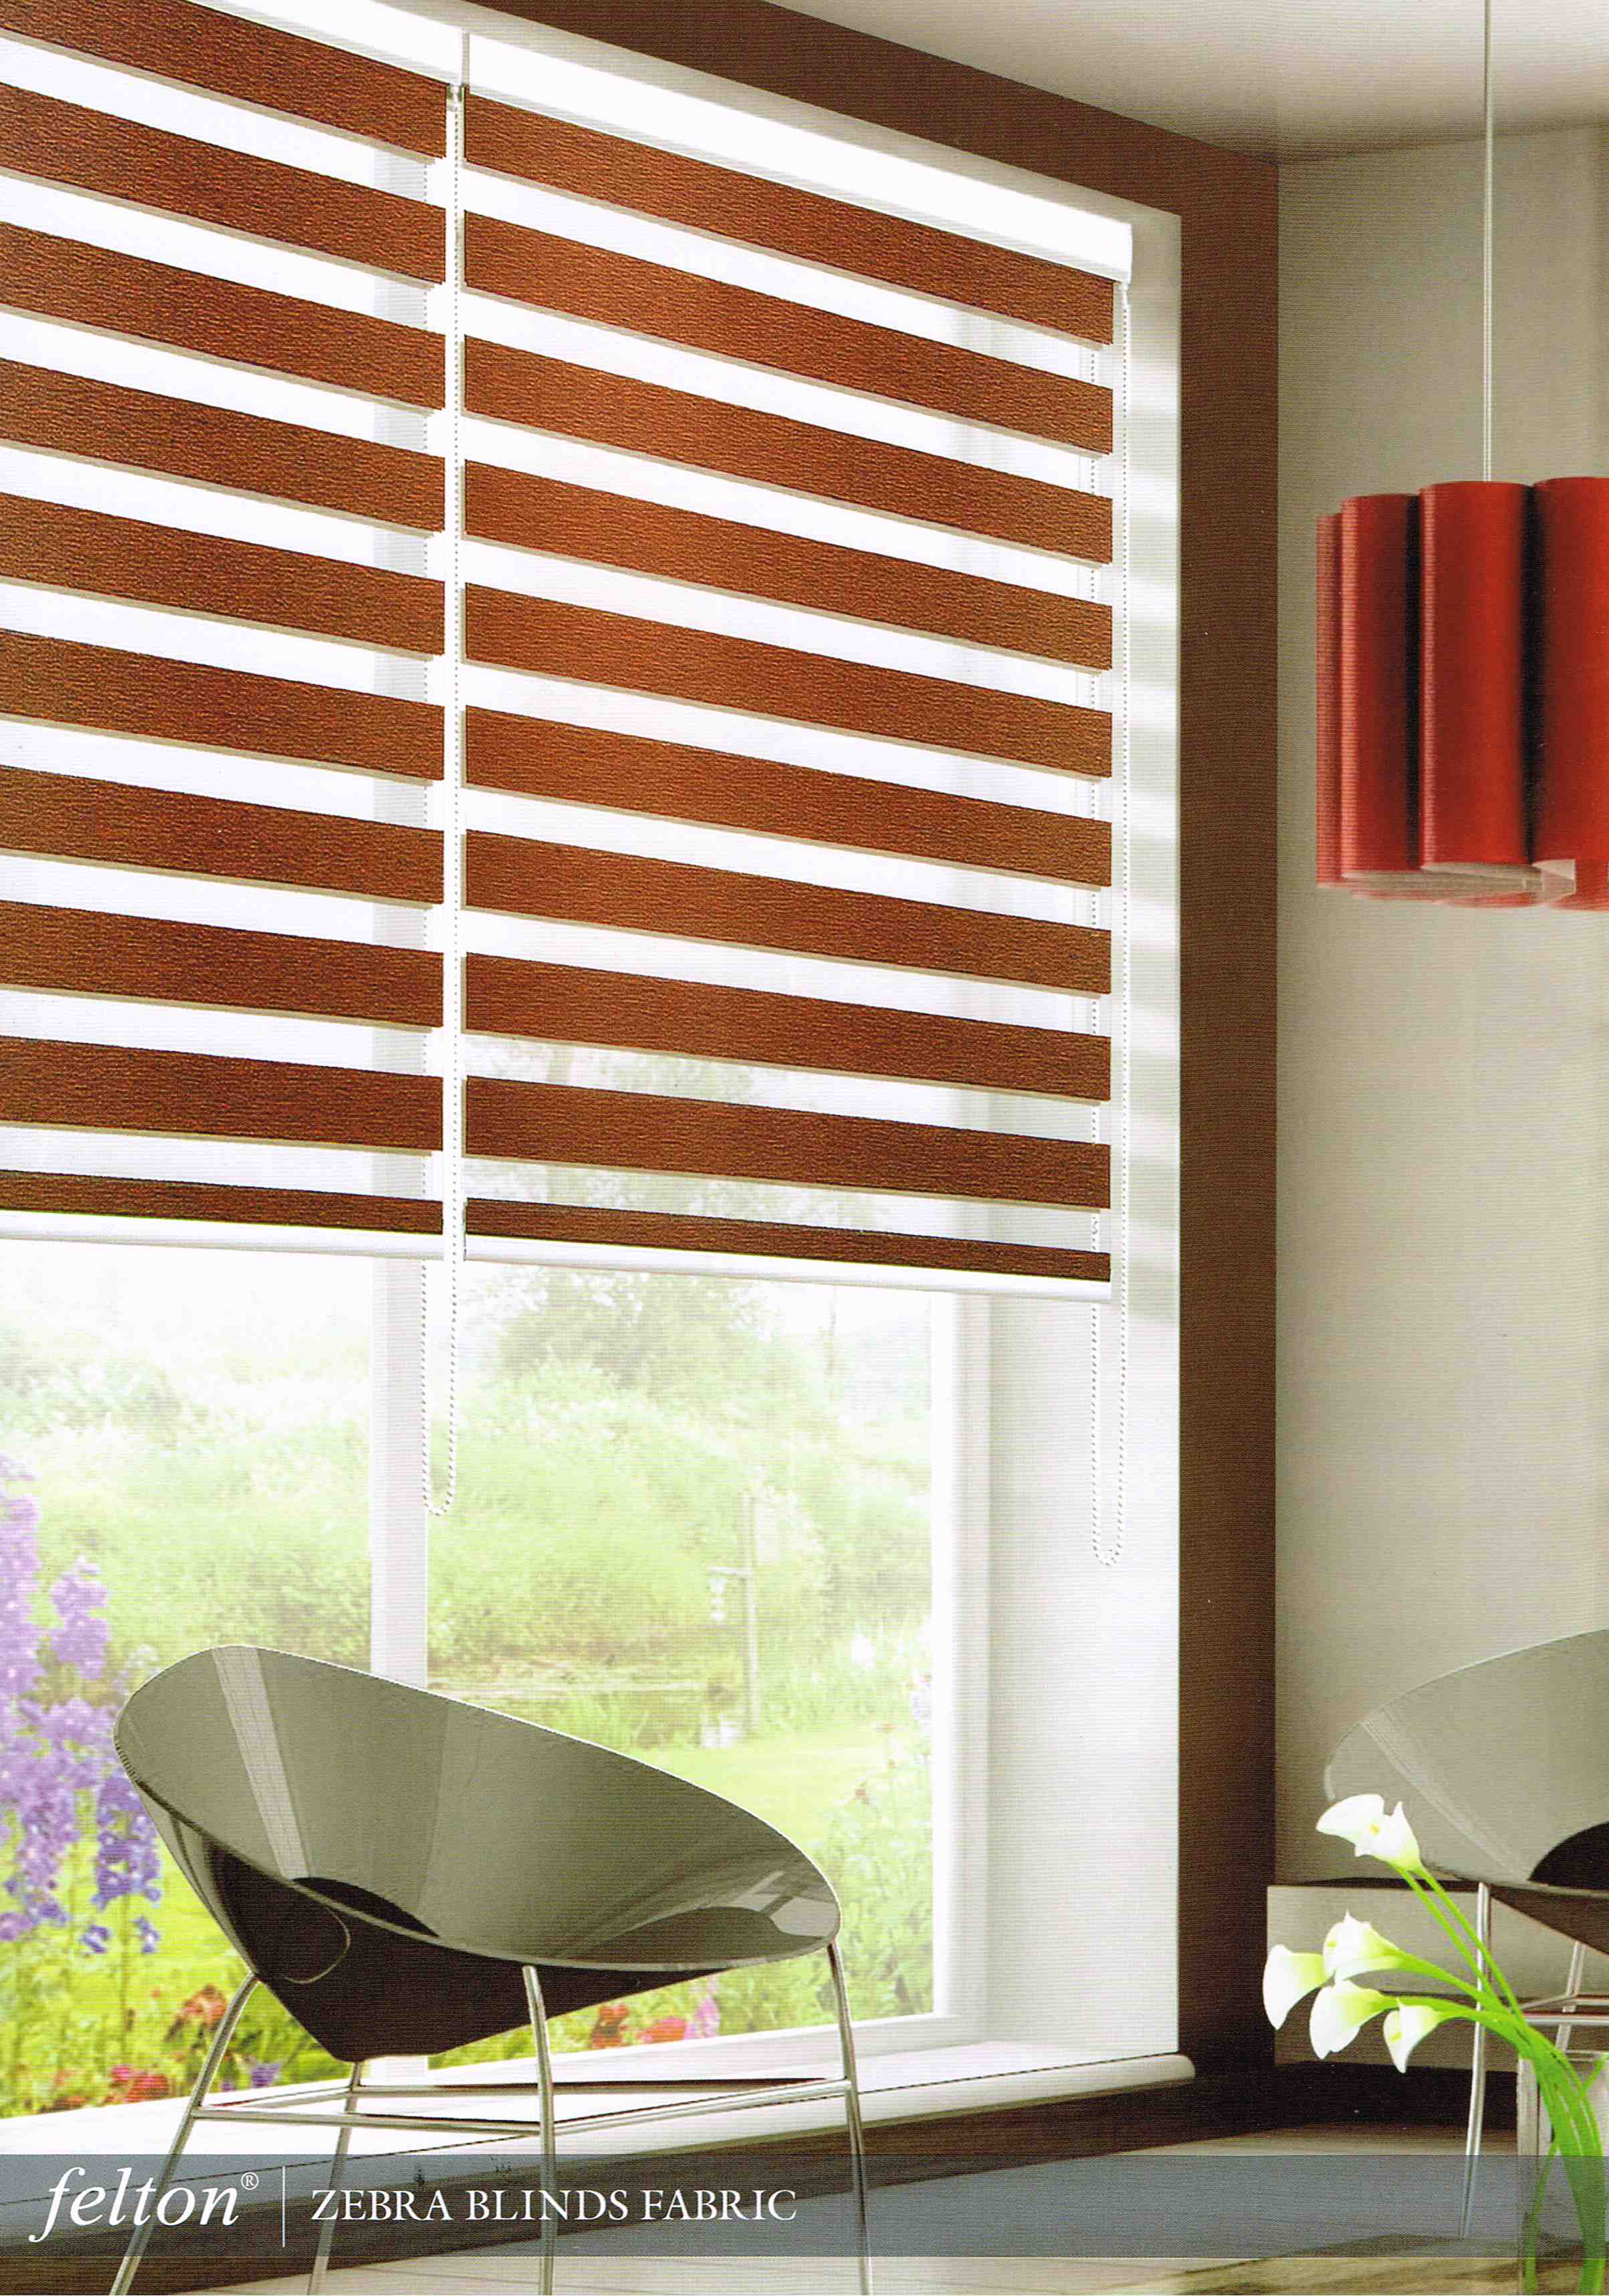 stang red to trends zonder discover trend your our books luxaflex blinds the local all blog classic showroom collection vb hot within contact s